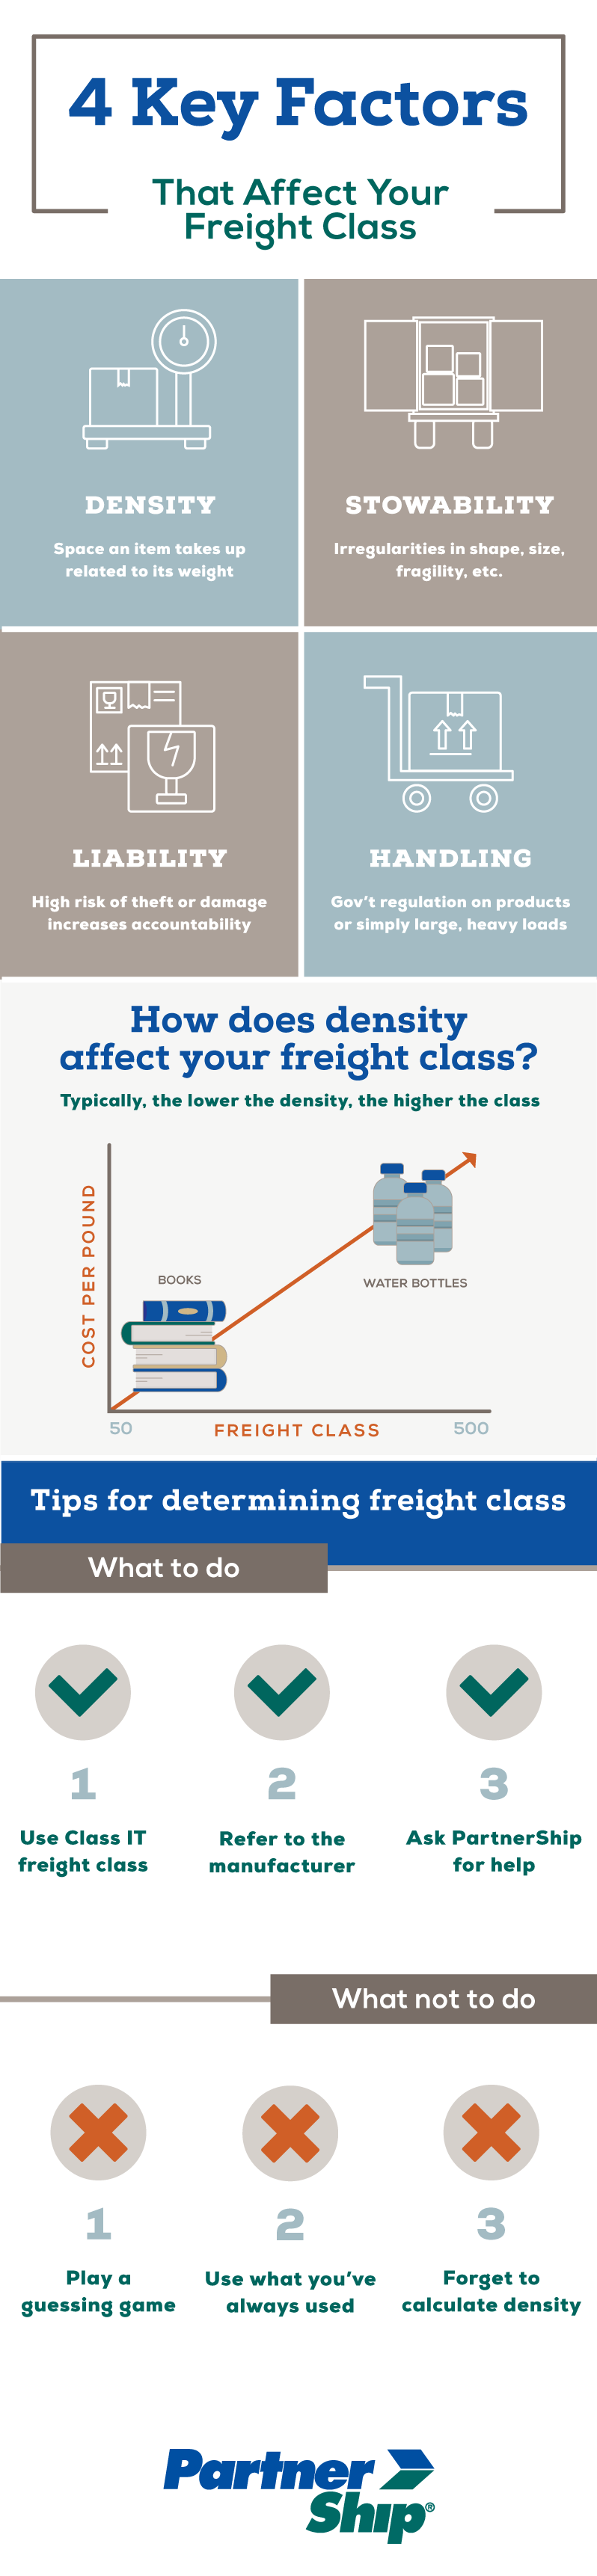 4 Key Factors That Affect Your Freight Class Infographic